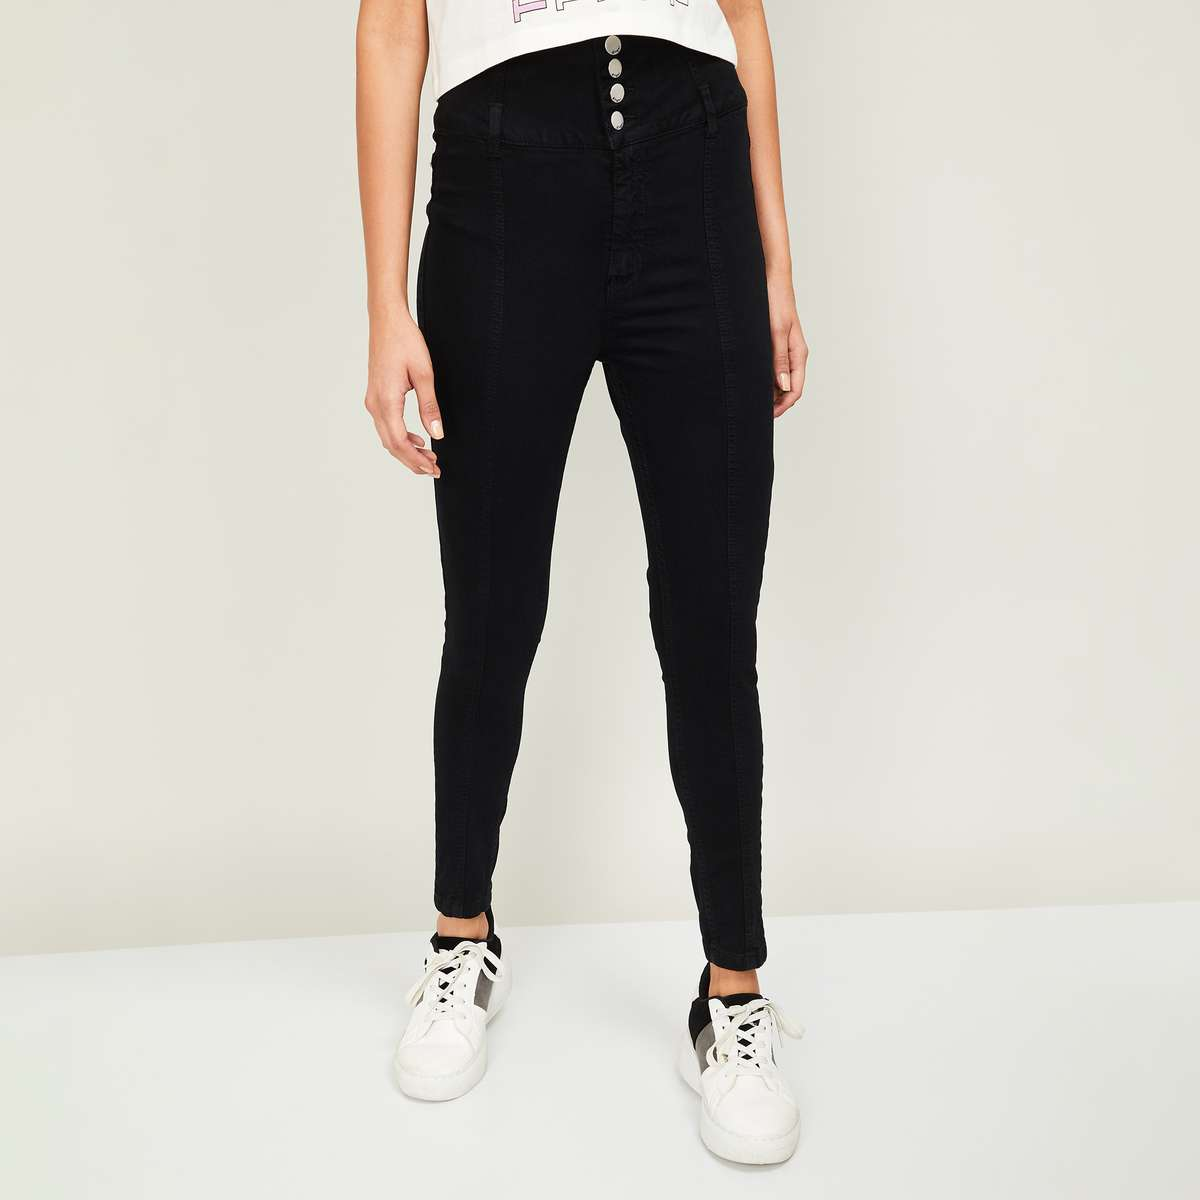 7.GINGER Women Solid Skinny Fit Jeans